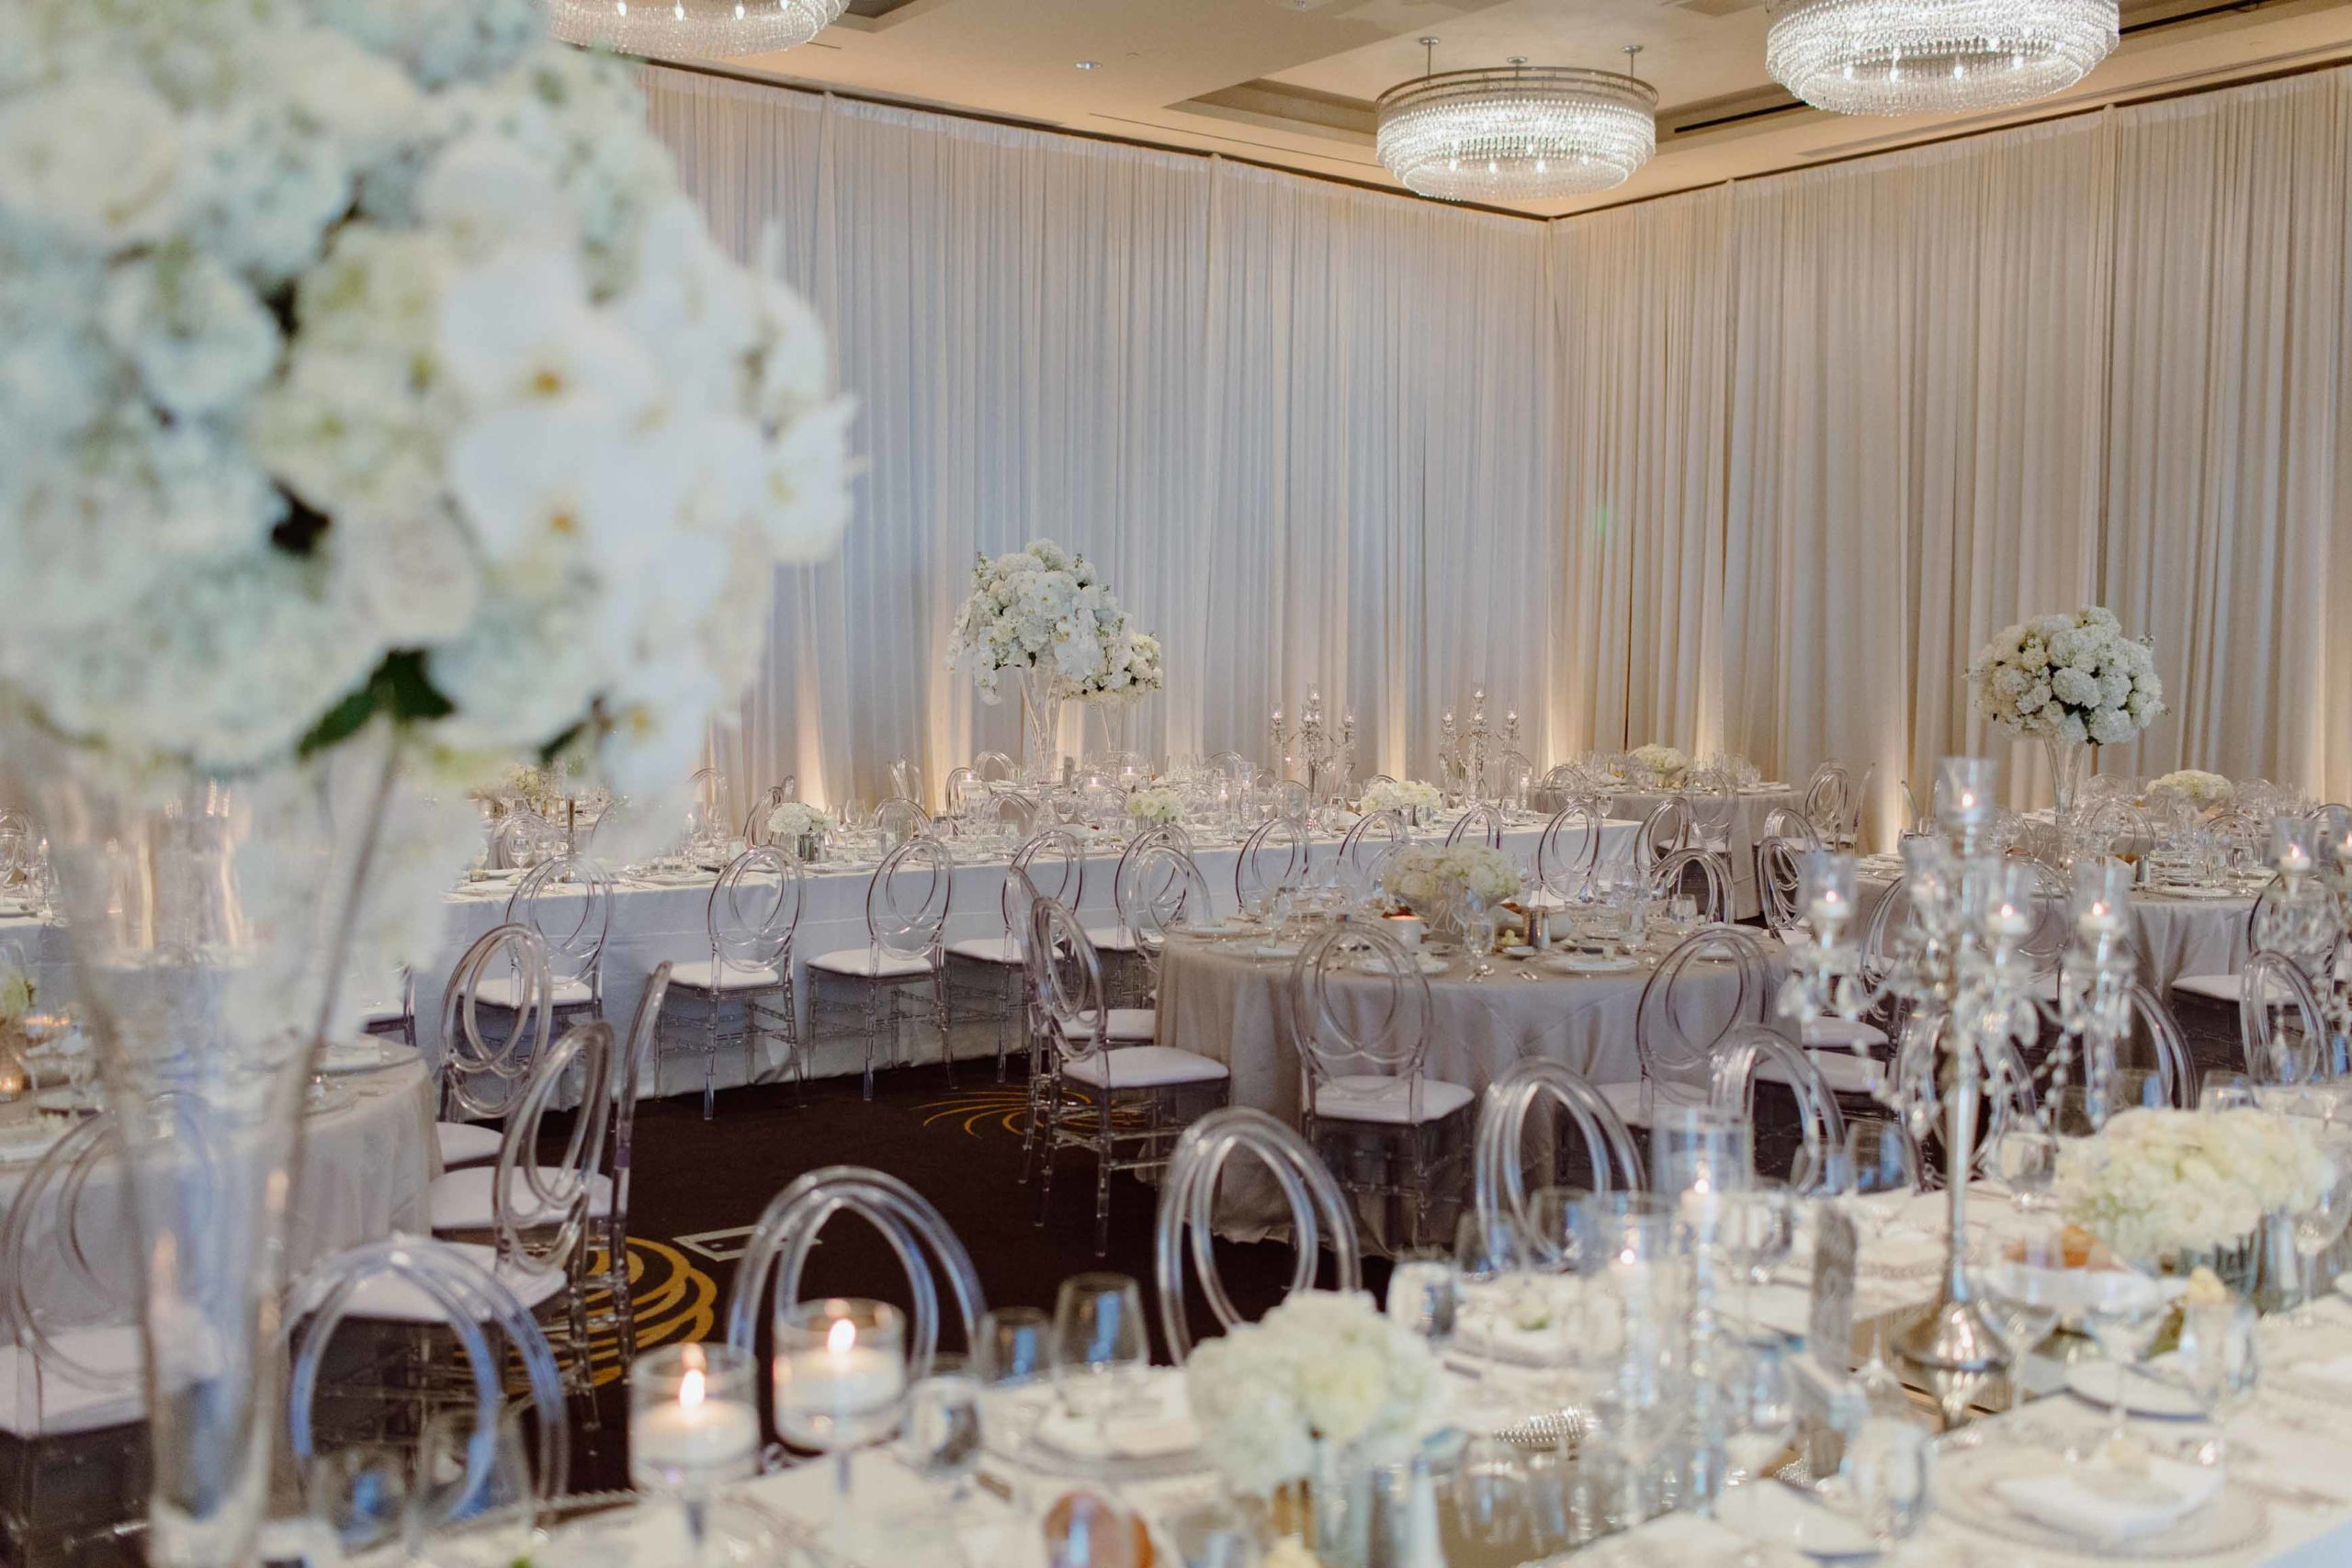 all white wedding reception with draped ballroom, clear lucite chairs, and tall white centerpeices with phalenopsis orchids